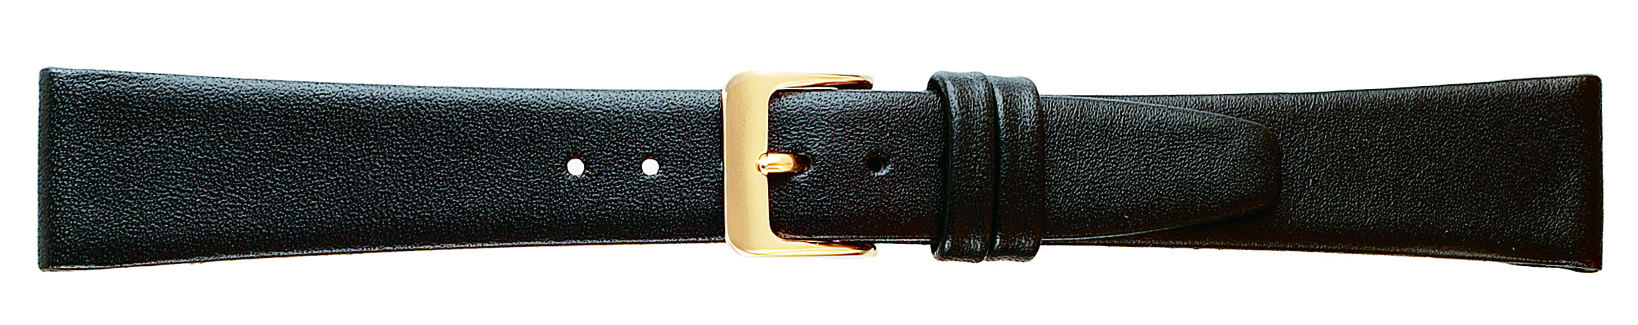 19MM Leather Band Black Smooth Calf-0